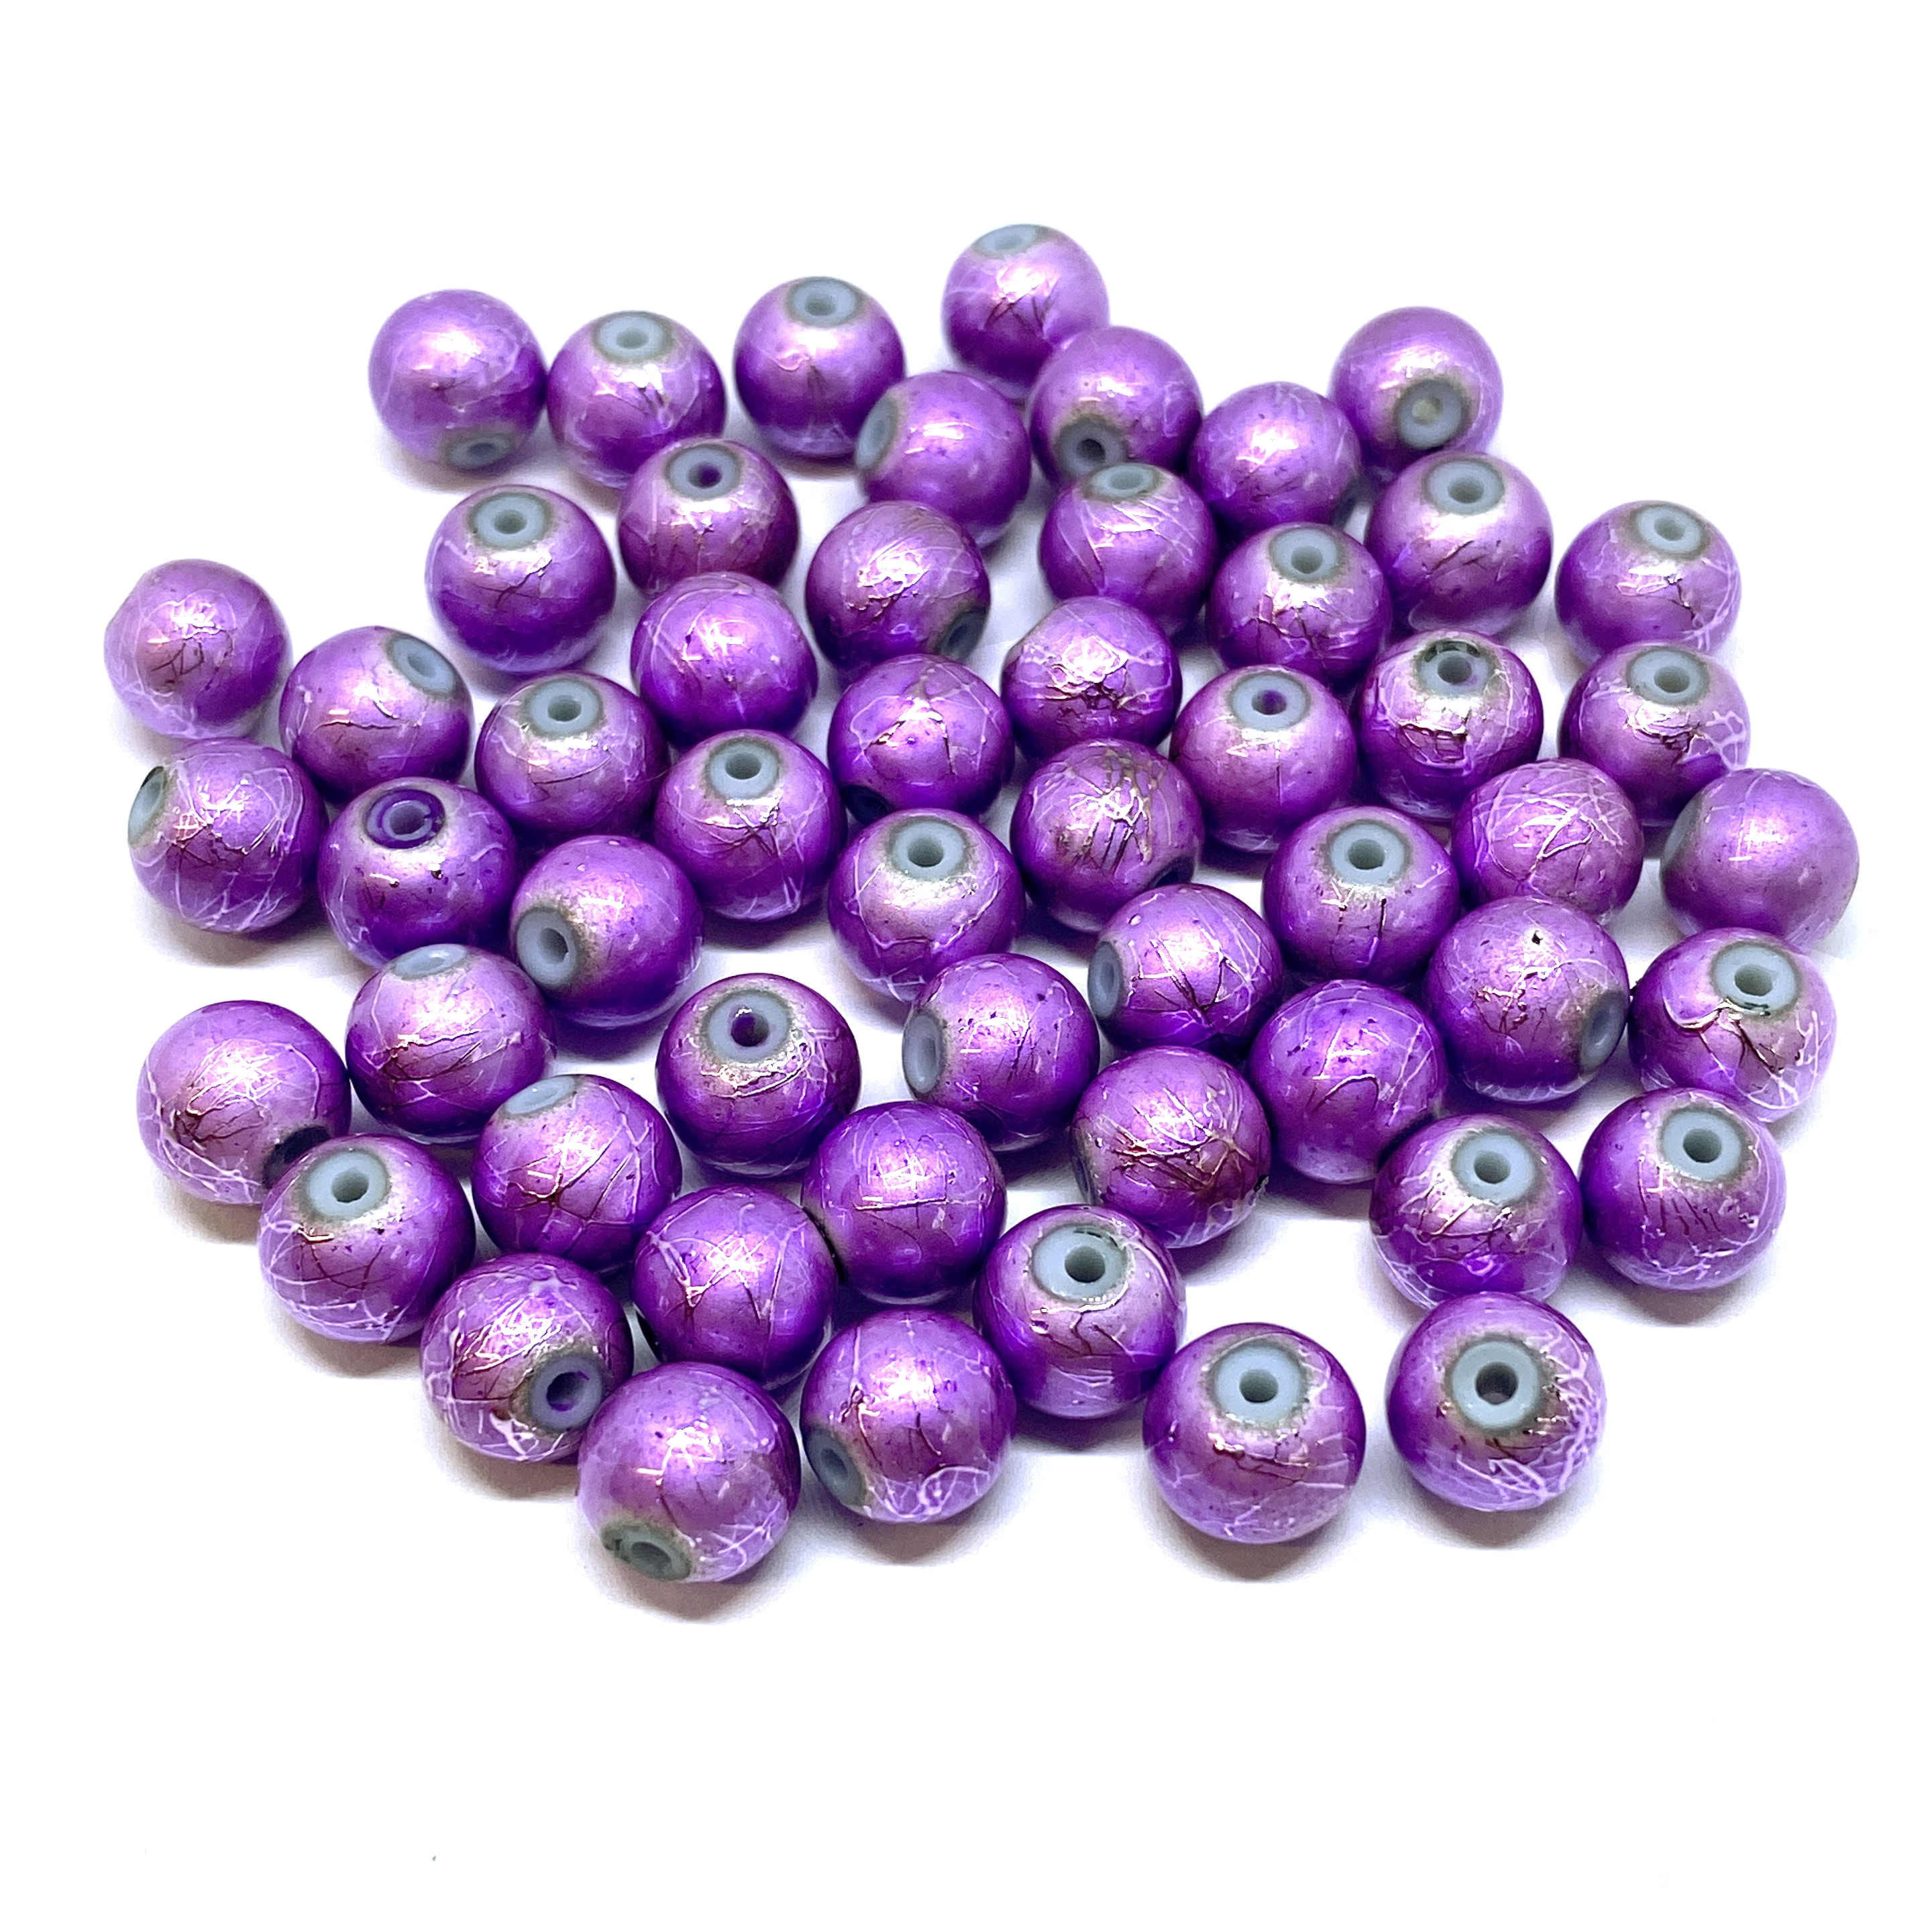 spectra beads, glass beads, jewelry supplies, colorful beads, purple beads, orchid, glass, spectra, 8mm, B'sue Boutiques, jewelry making, jewelry beads, beads, beading supplies, 01709